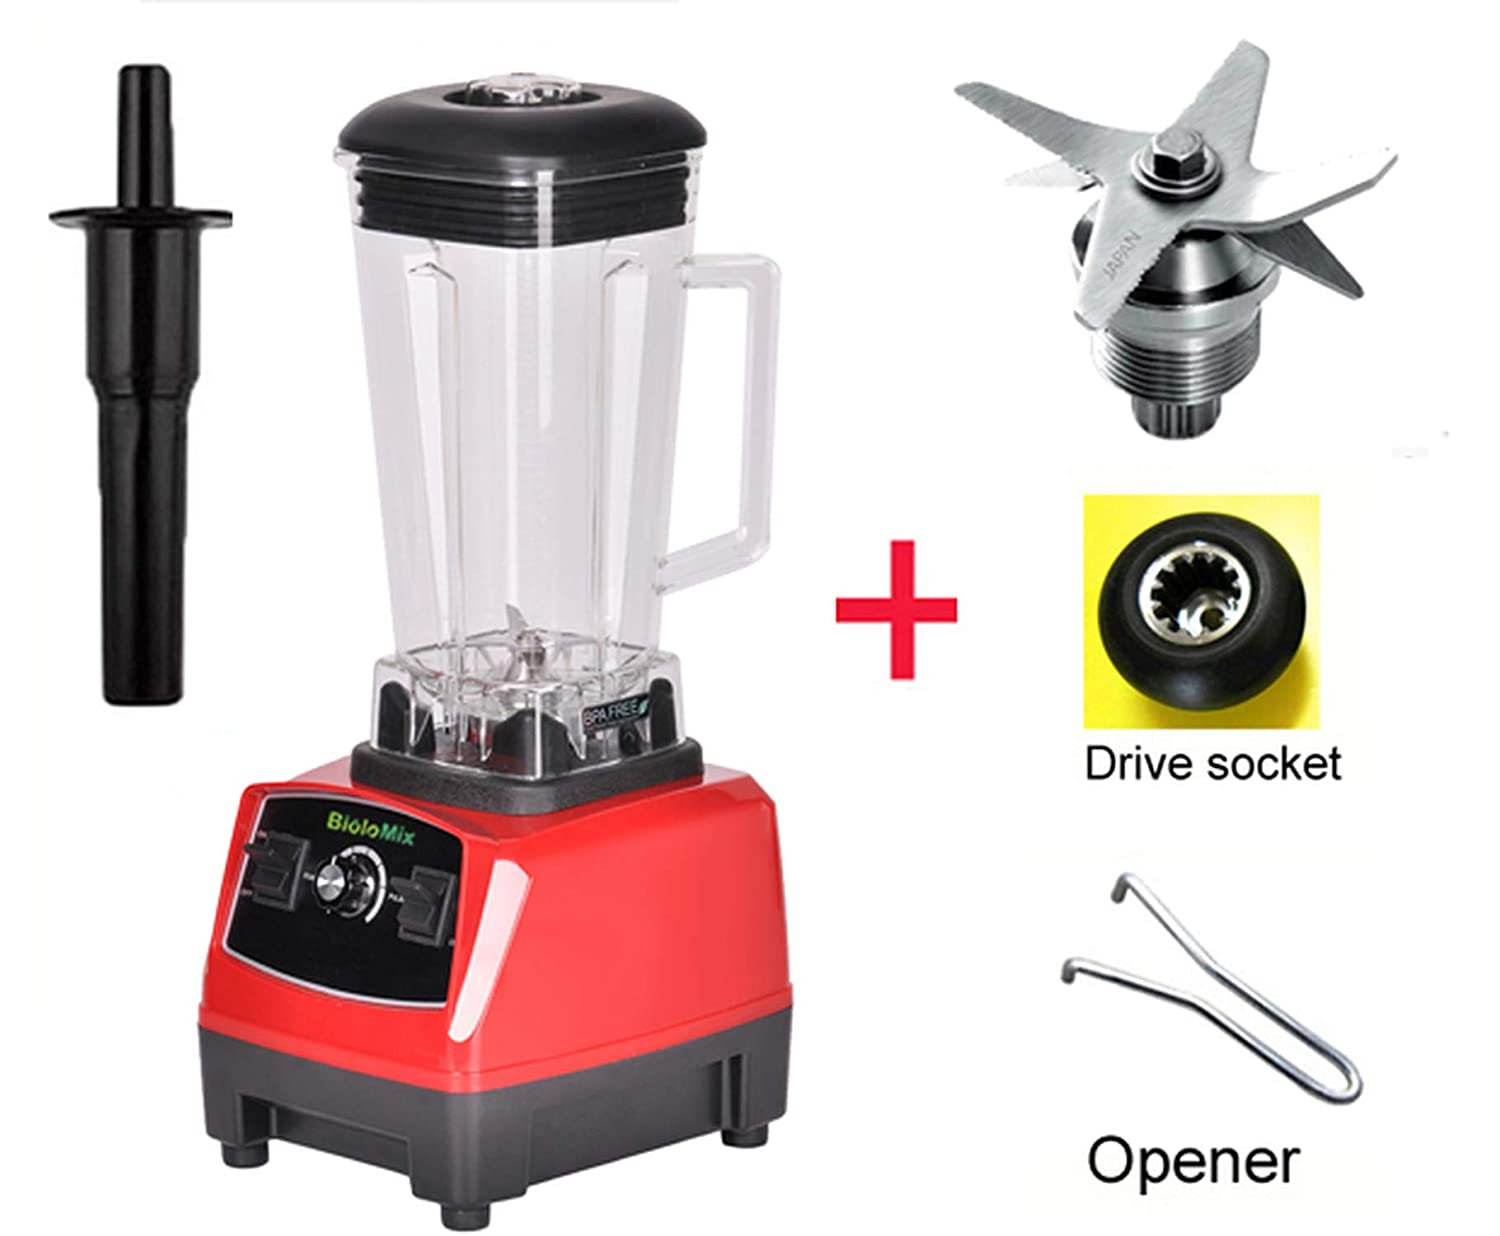 2200W 3Hp 2L G5200 High Power Ial Home Professional Smoothies Power Blender Food Mixer Juicer Fruit Processor,Red Full Parts,Eu Plug